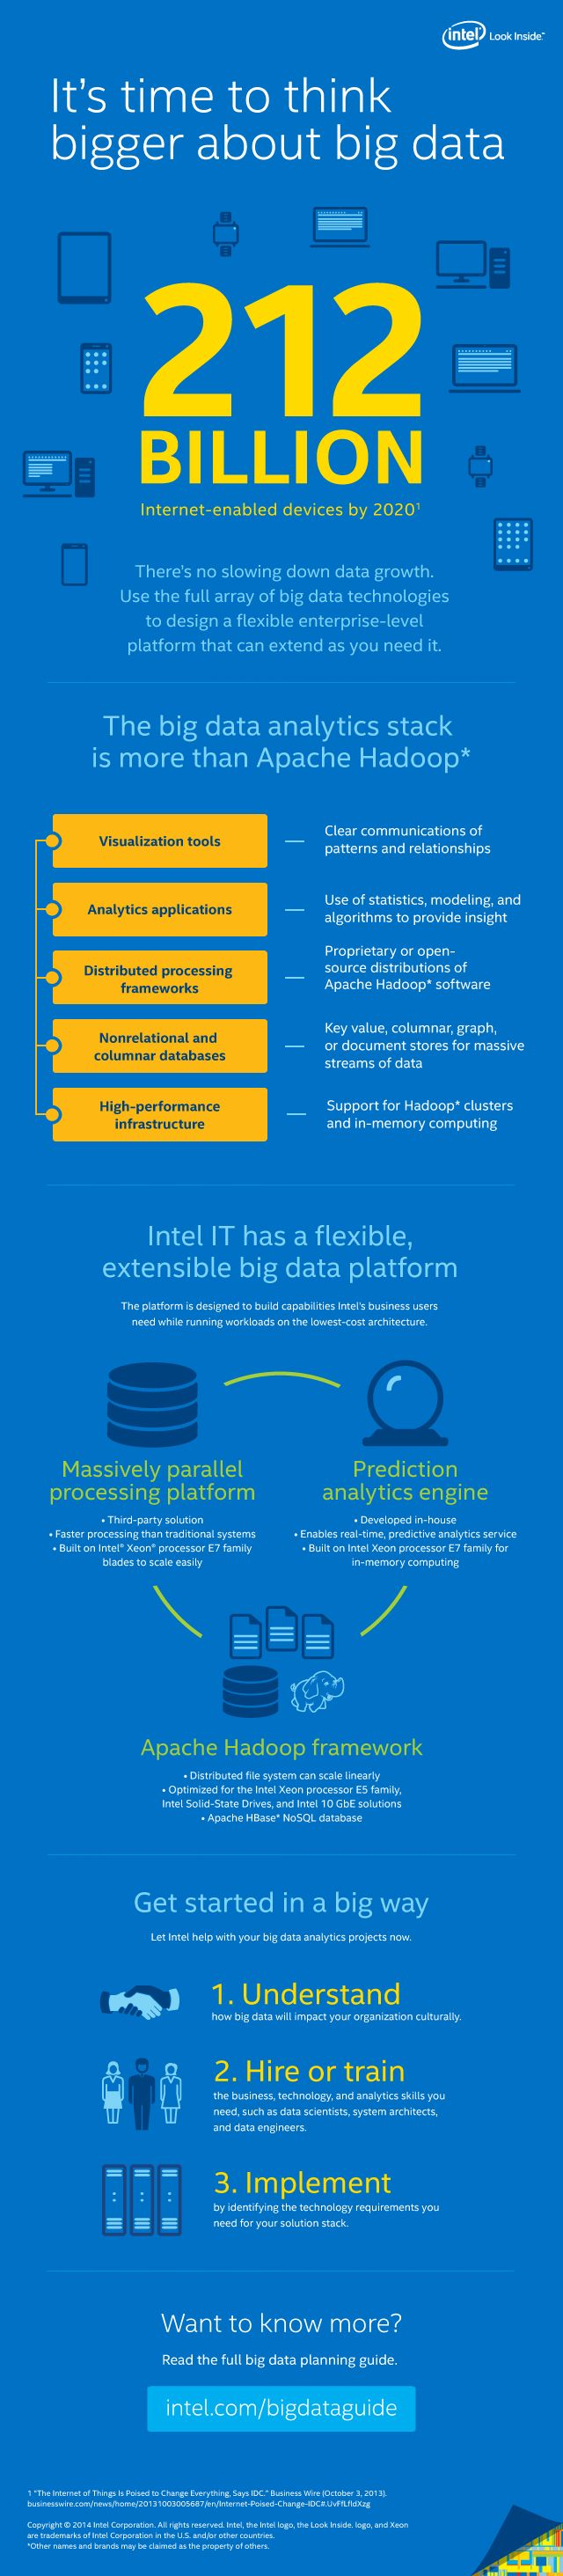 Getting Started with Big Data - Intel (640×2927)